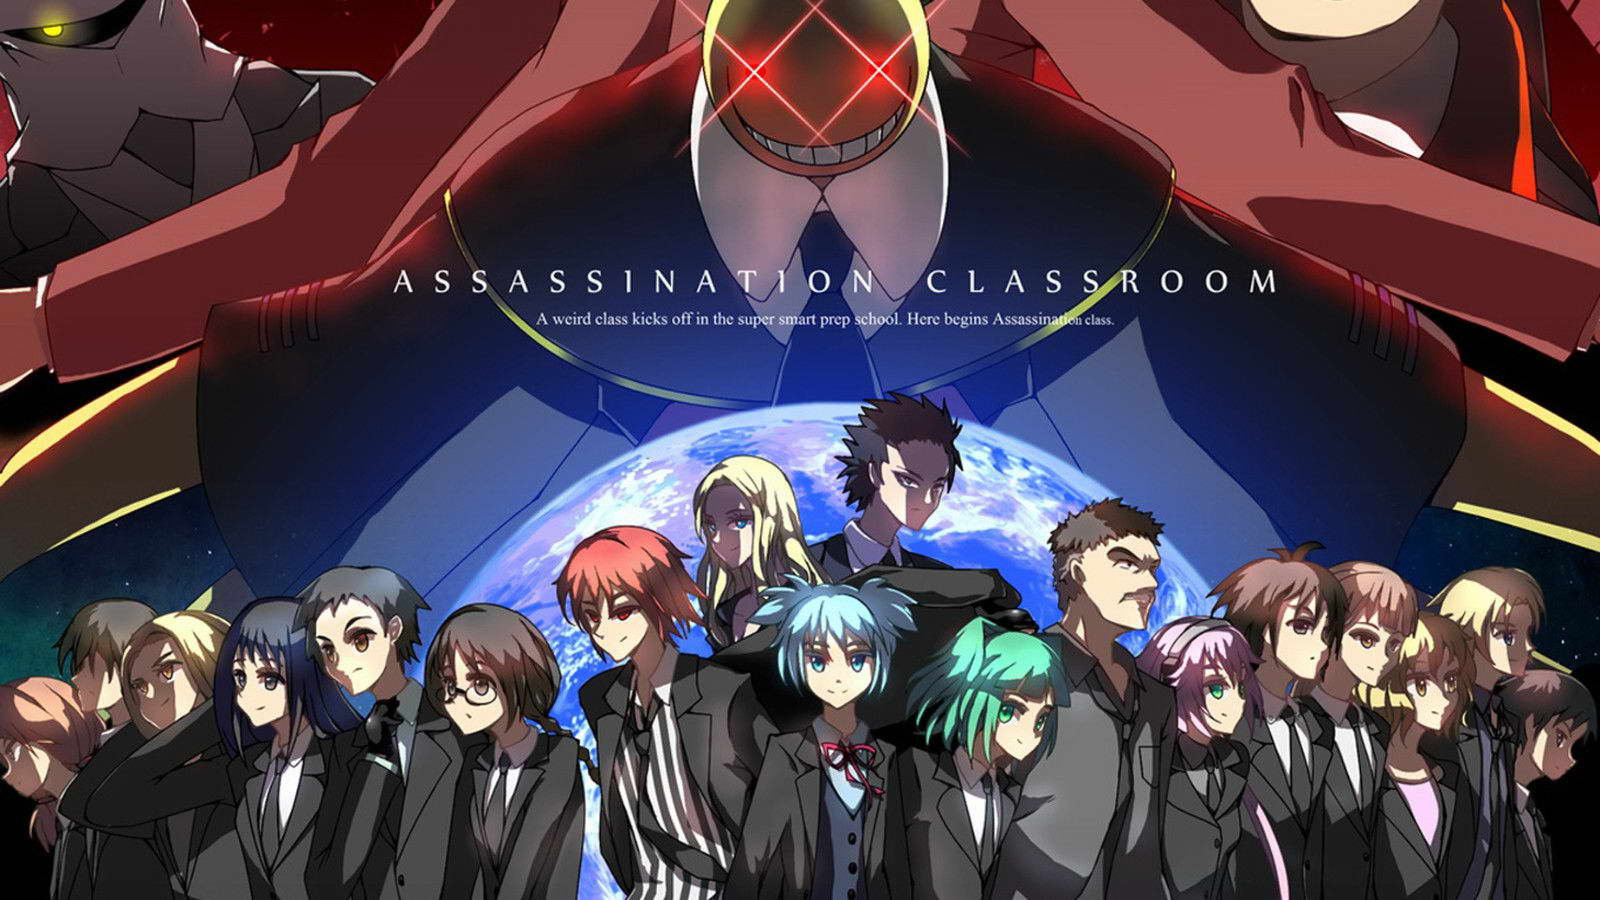 18781 Assassination Classroom Anime Wall Print POSTER AU